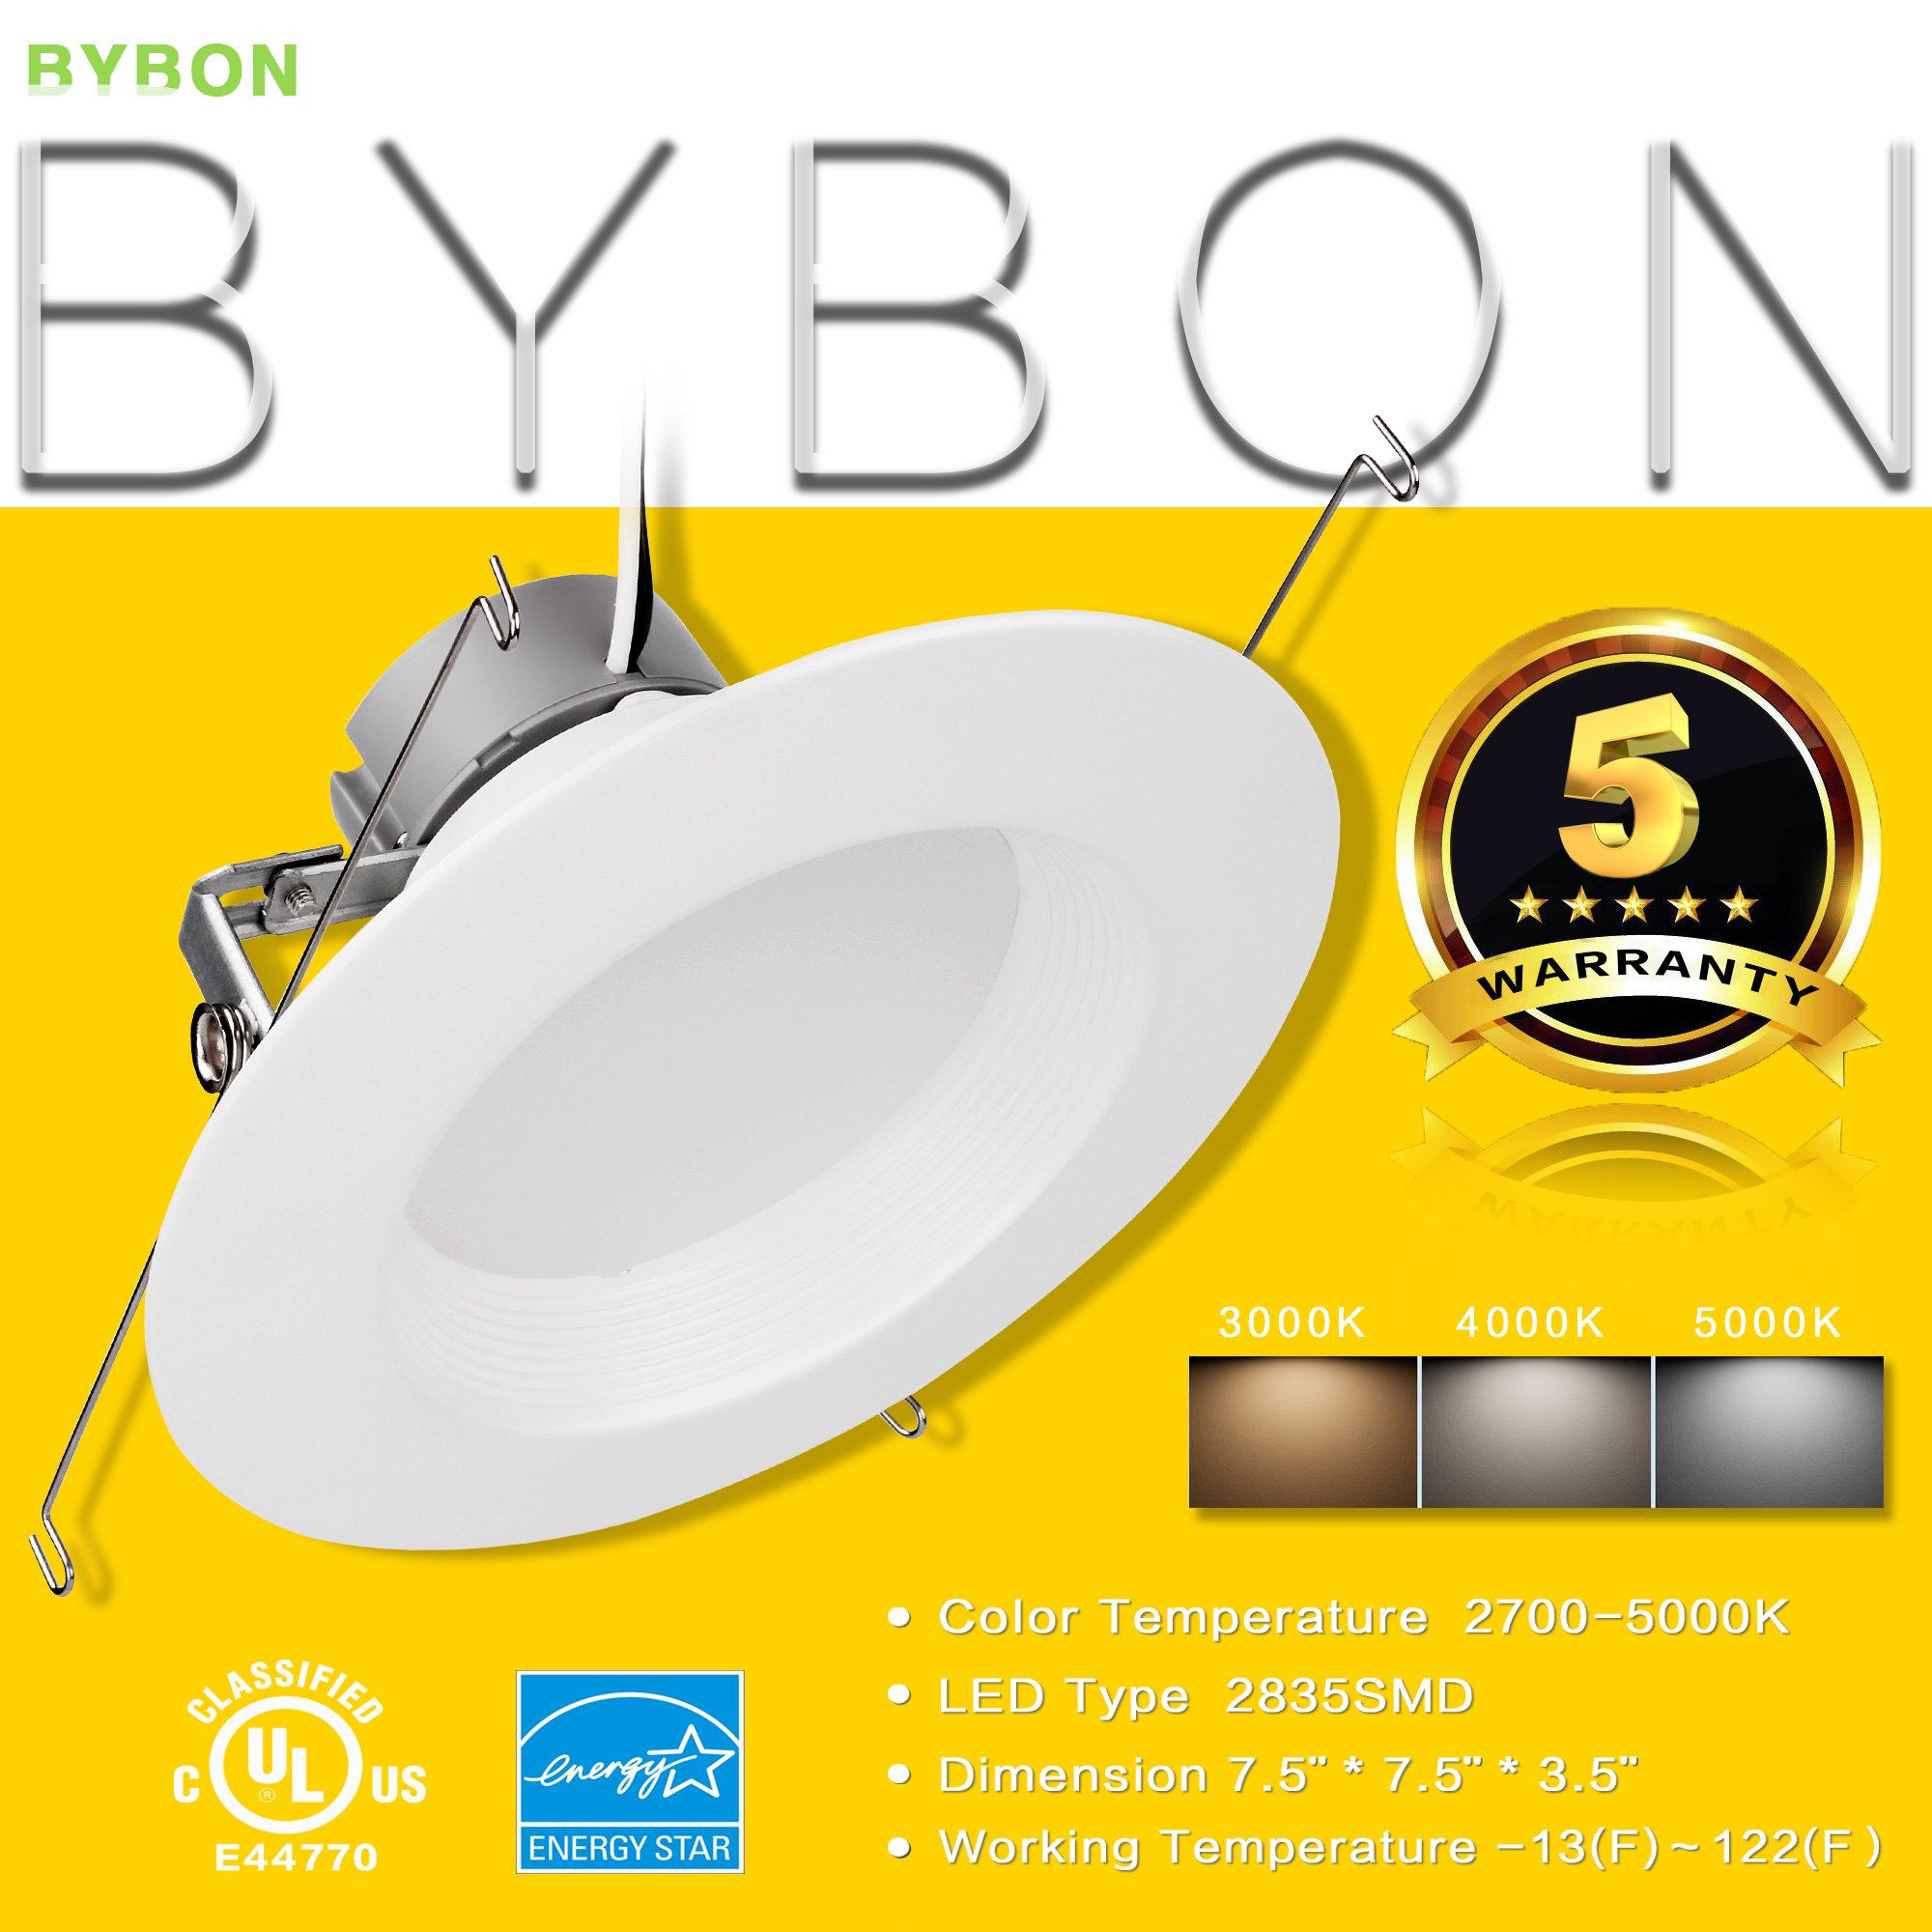 Bybon 4'' Dimmable Retrofit LED Downlight, 8W, UL and ENERGY STAR Classified (4000K, 8 Pack) by Bybon